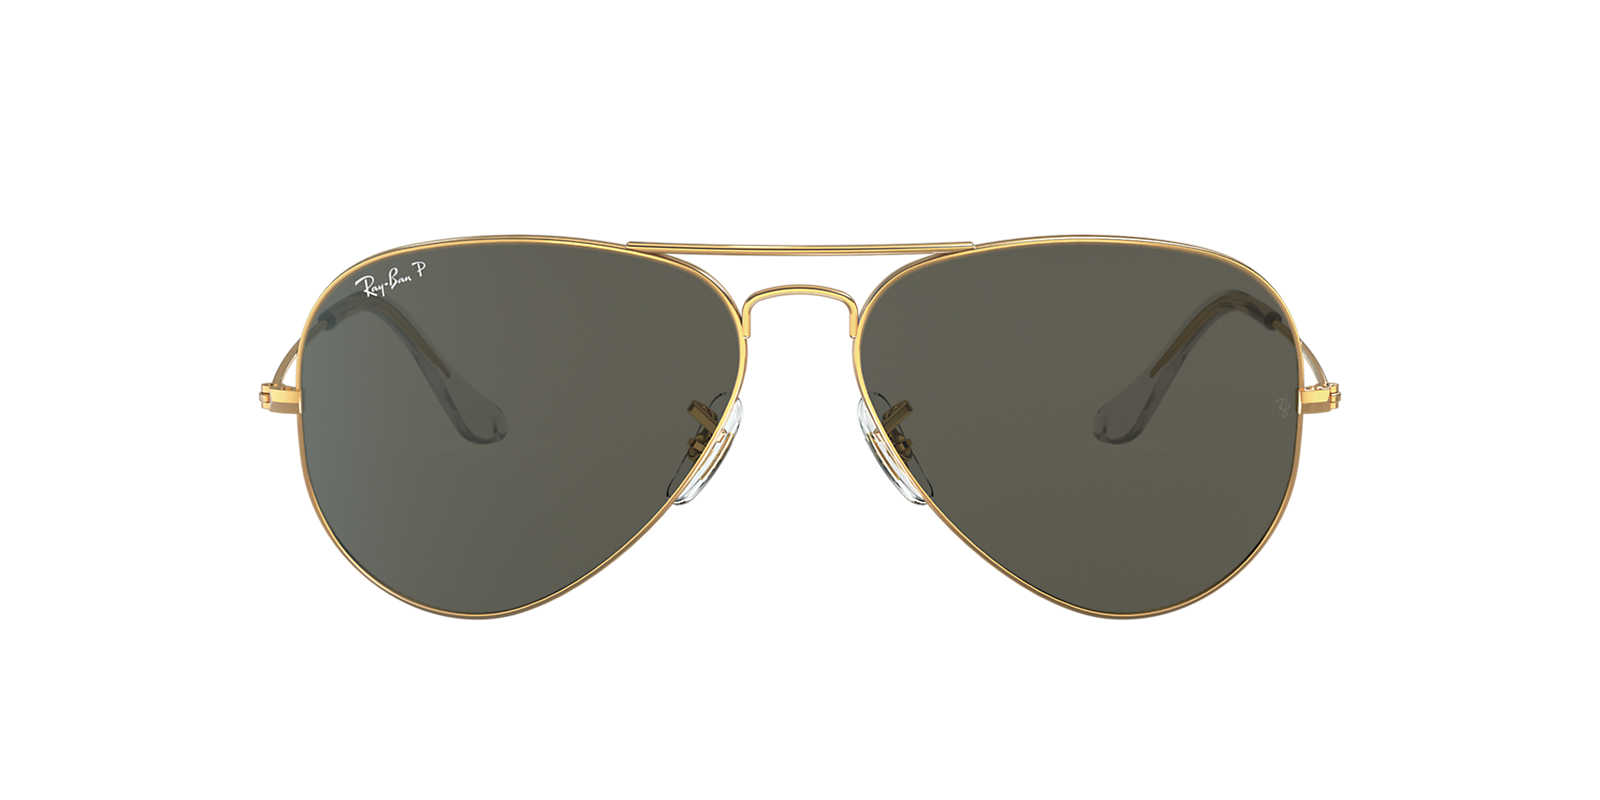 aviator green sunglasses  Ray-Ban RB3025 58 ORIGINAL AVIATOR 58 Green \u0026 Gold Shiny Polarized ...